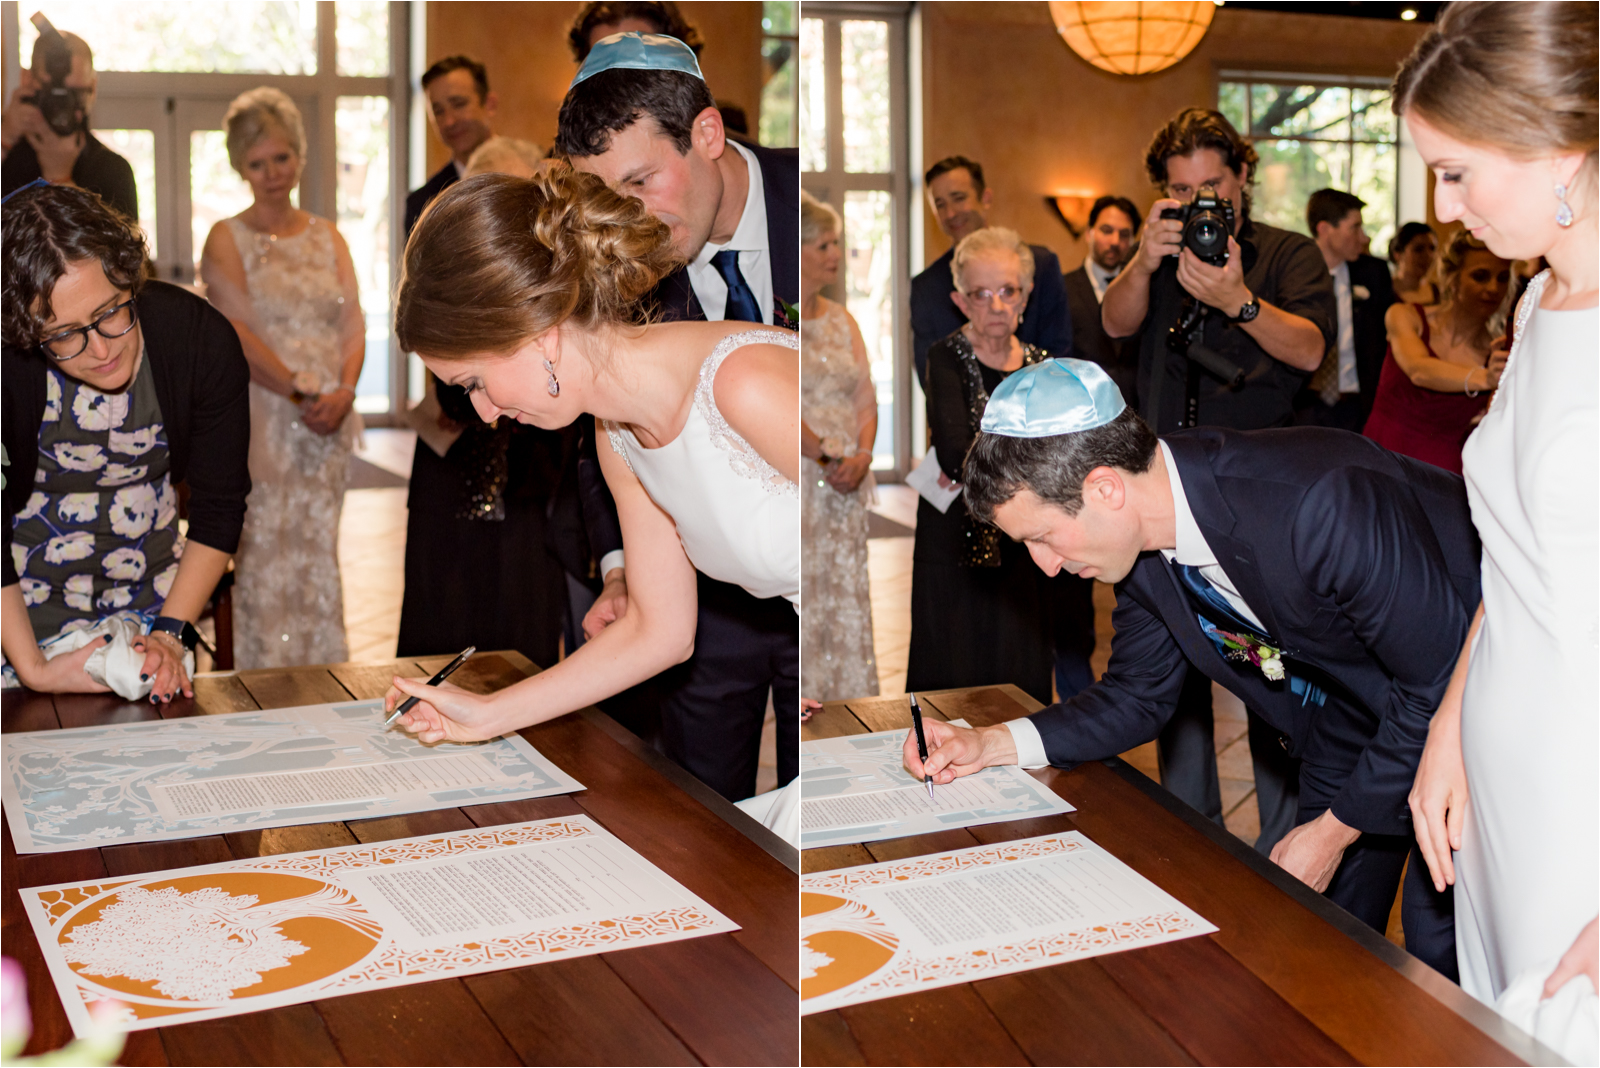 wedding-day-destination wedding photographer-destination-photographer-chicago-illinois-malone-bubman-galleria-marchetti-jessica-capozzola-focus-on-joy-photography-tisch-tish-ketubah-signing-jewish-wedding